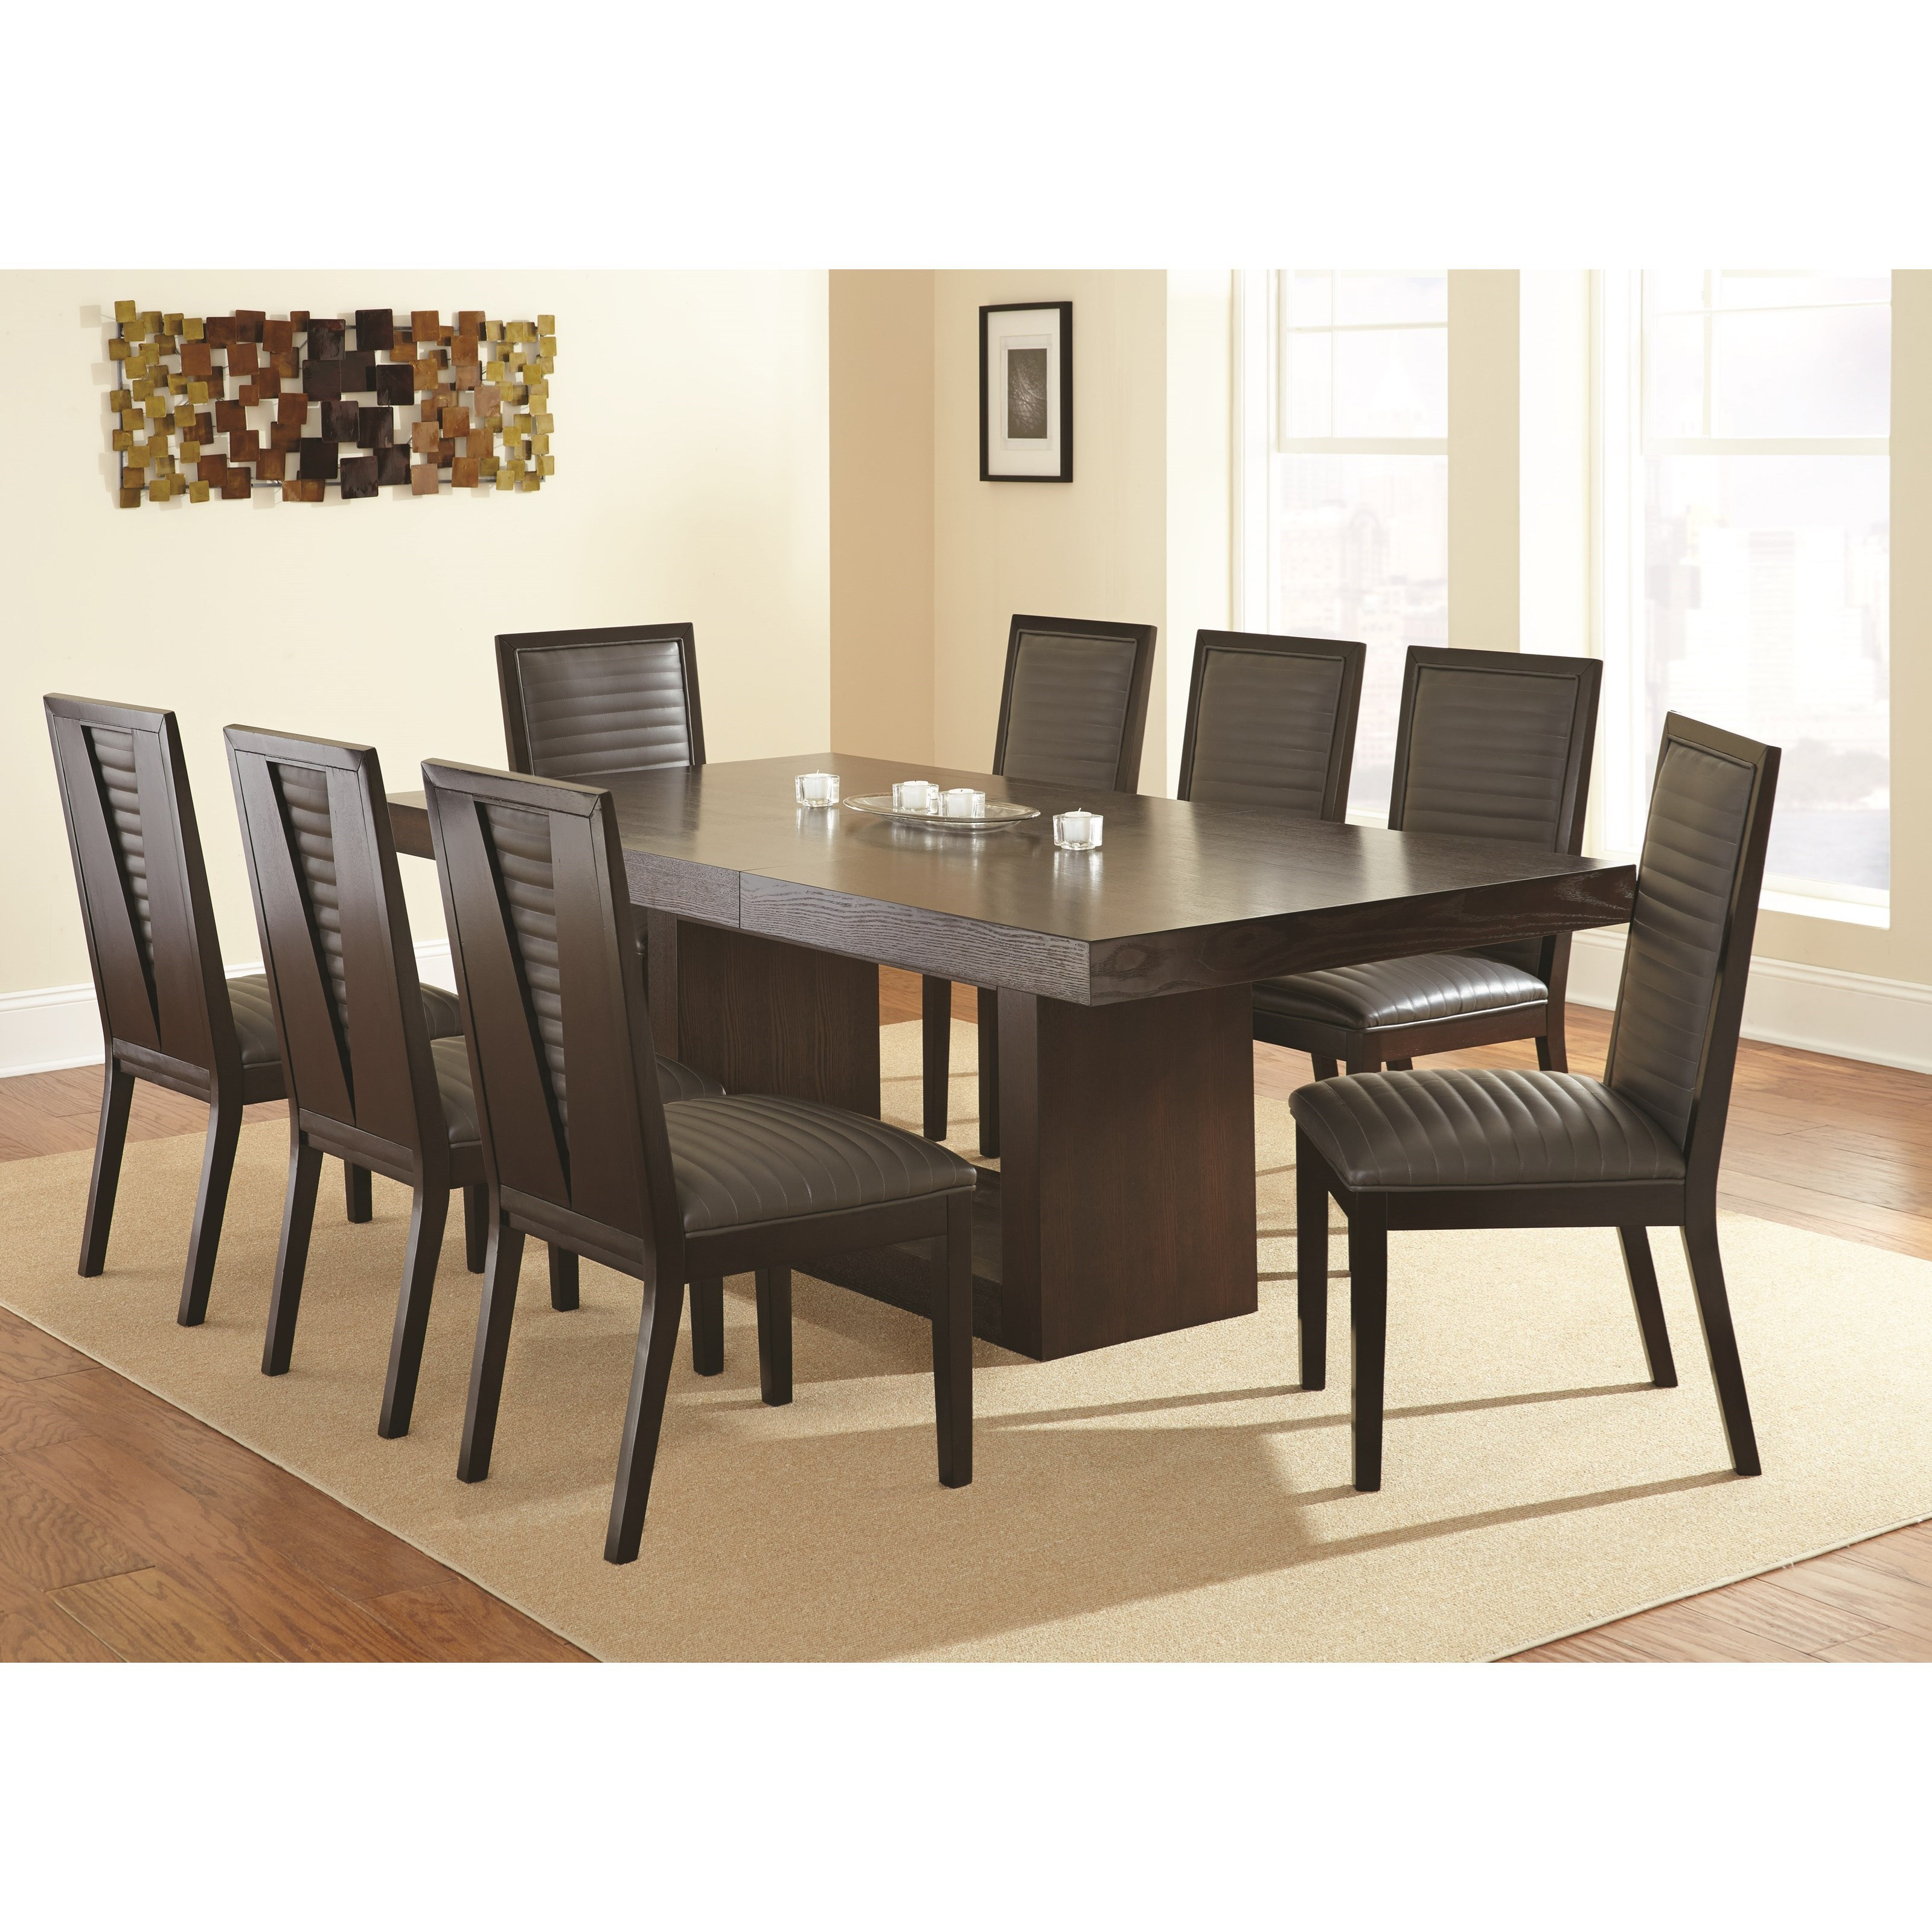 Contemporary Dining Set with Upholstered Side Chairs